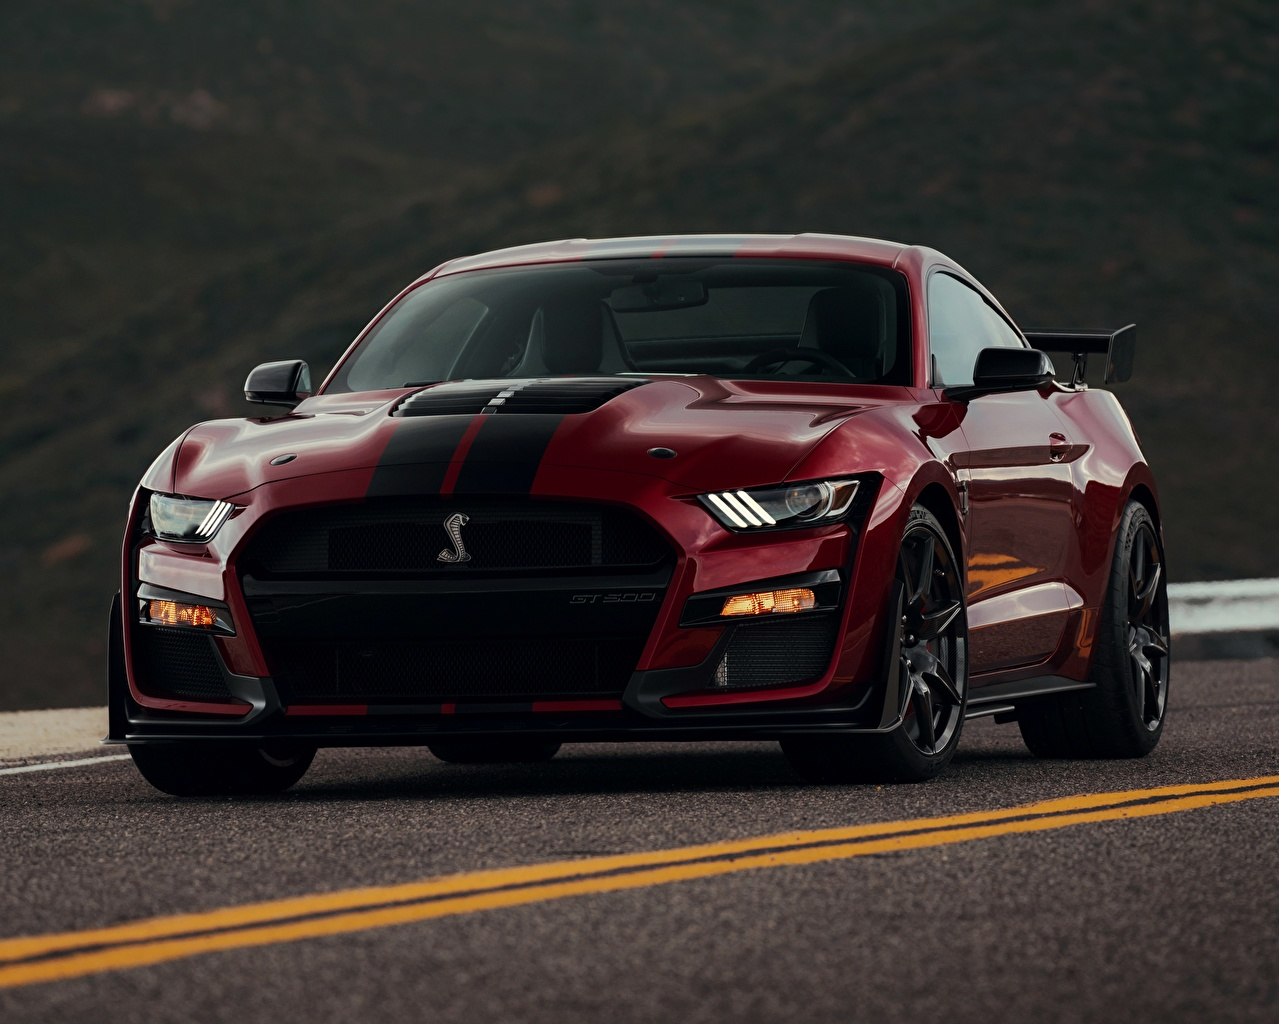 Image Ford Mustang Shelby GT500 2019 dark red Cars Front maroon burgundy Wine color auto automobile